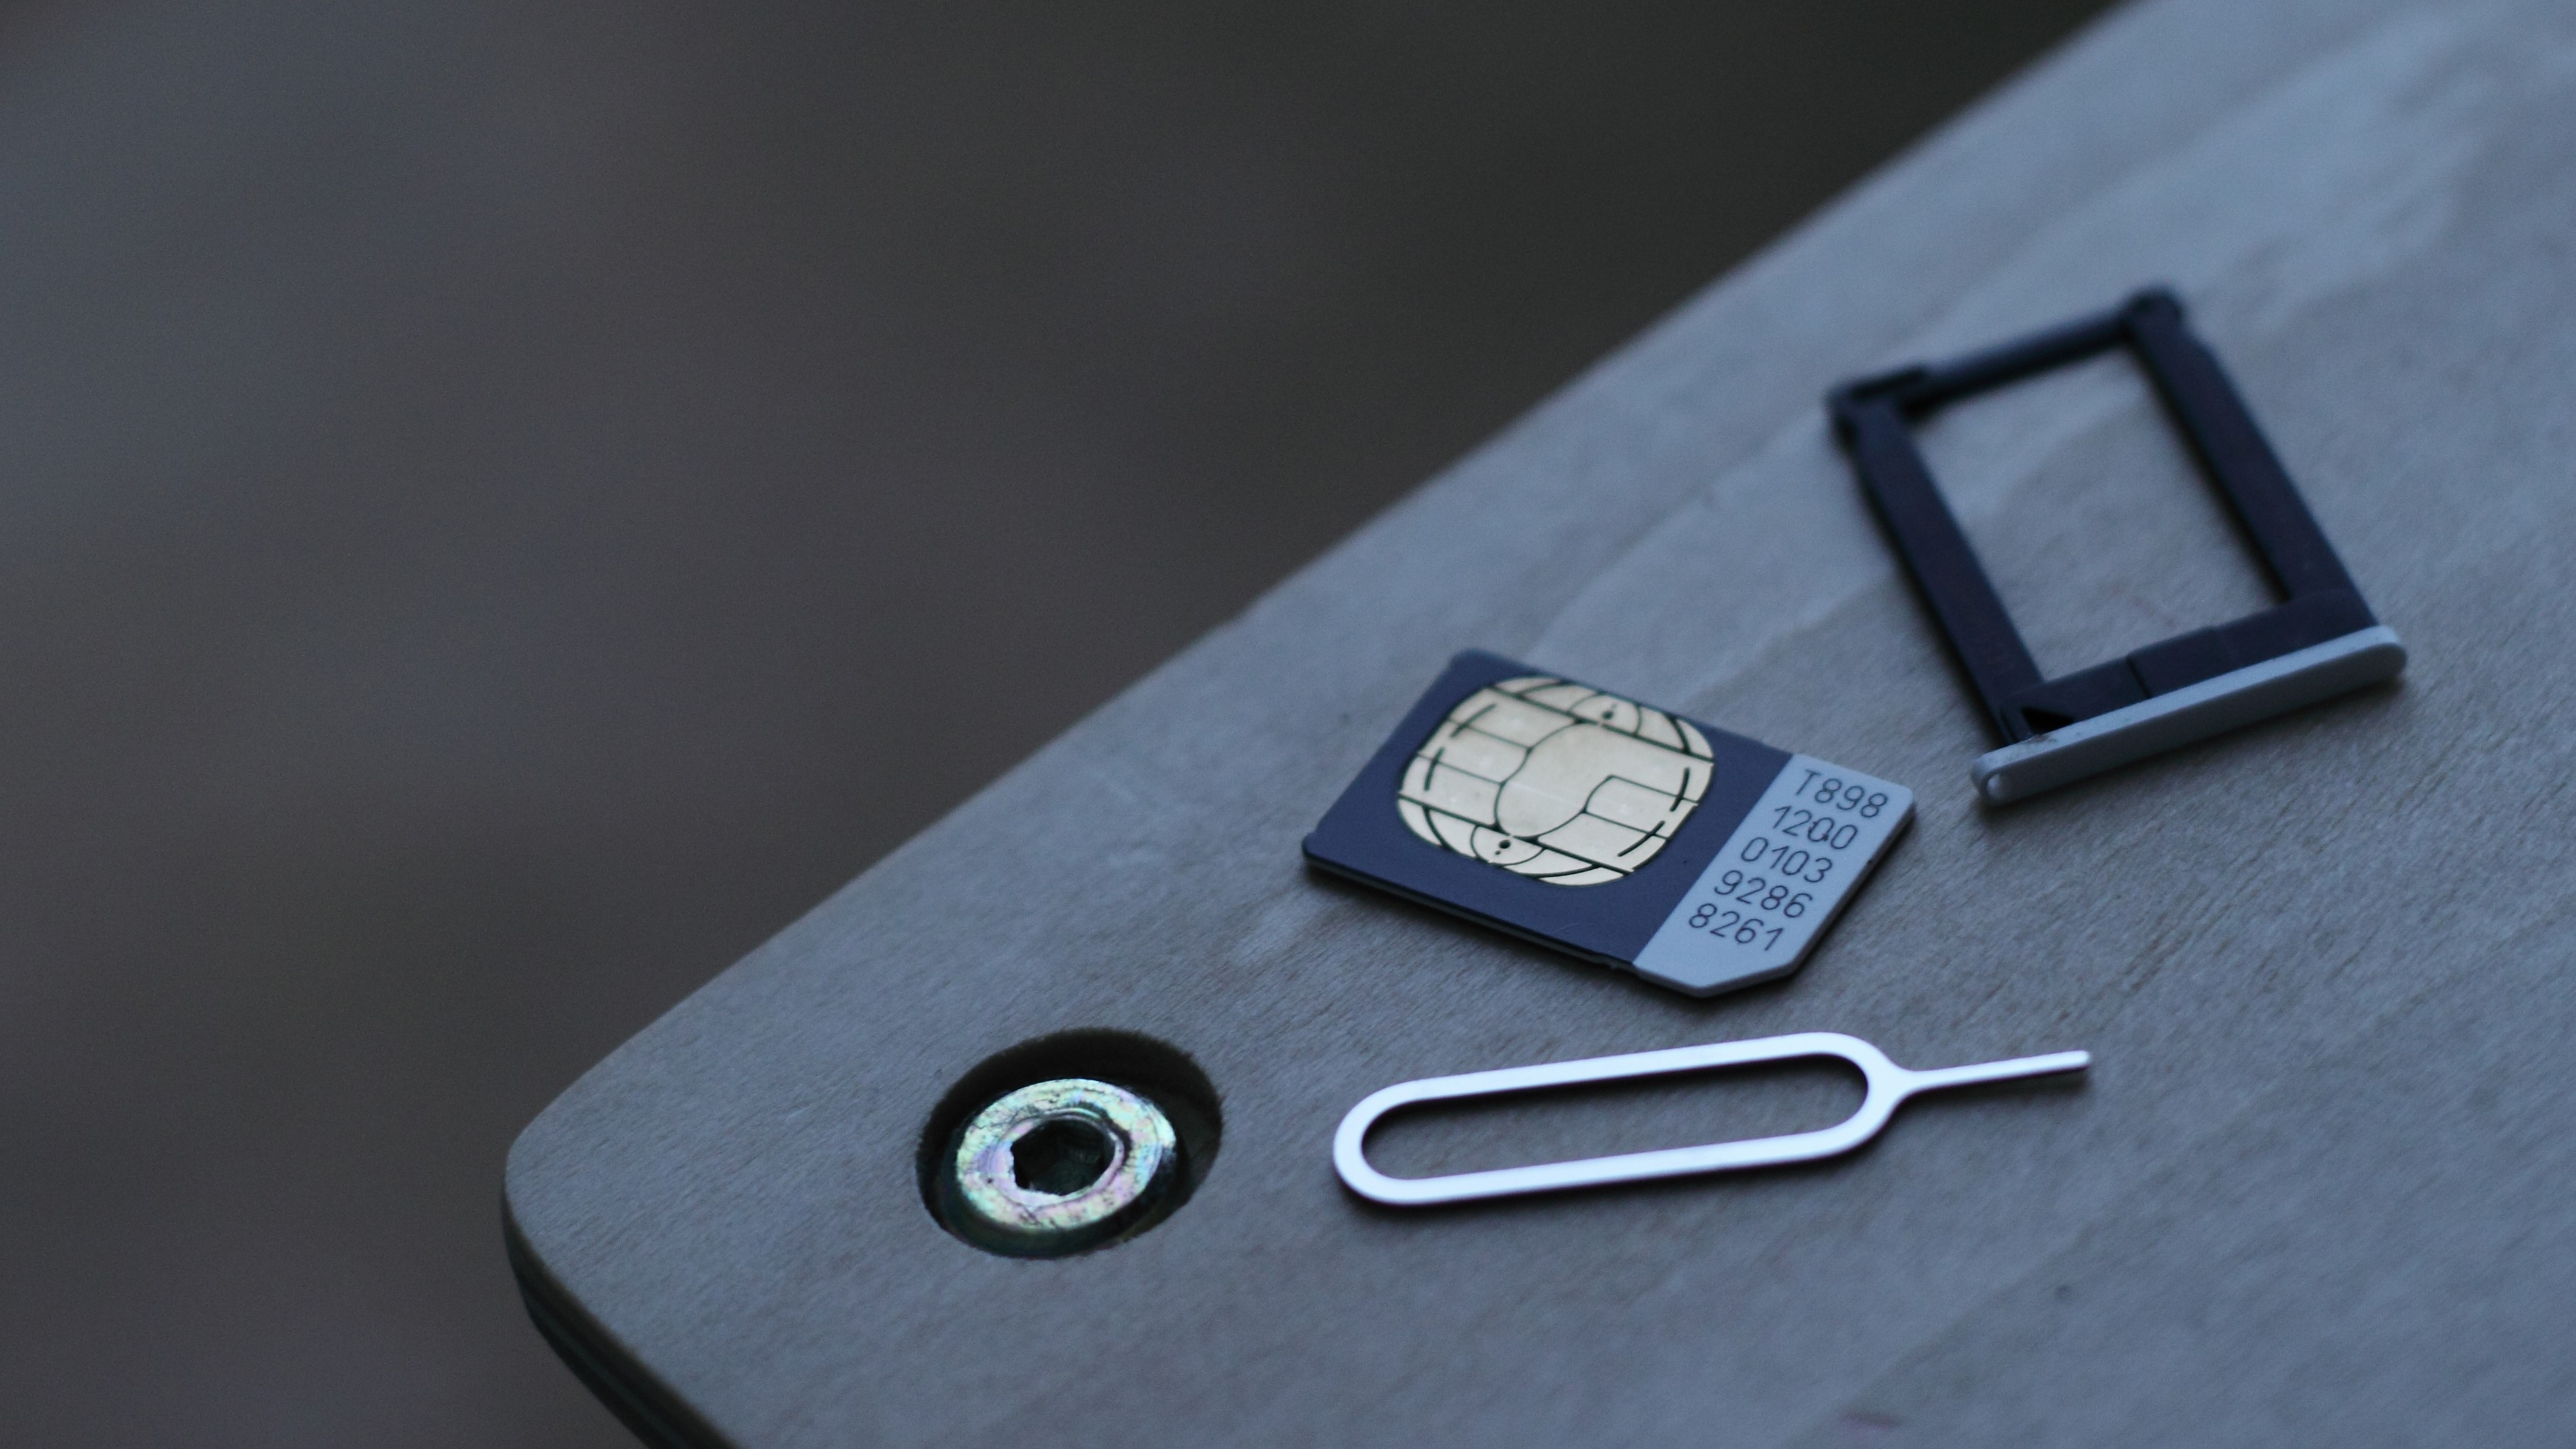 Why Are SIM Cards Still a Thing?